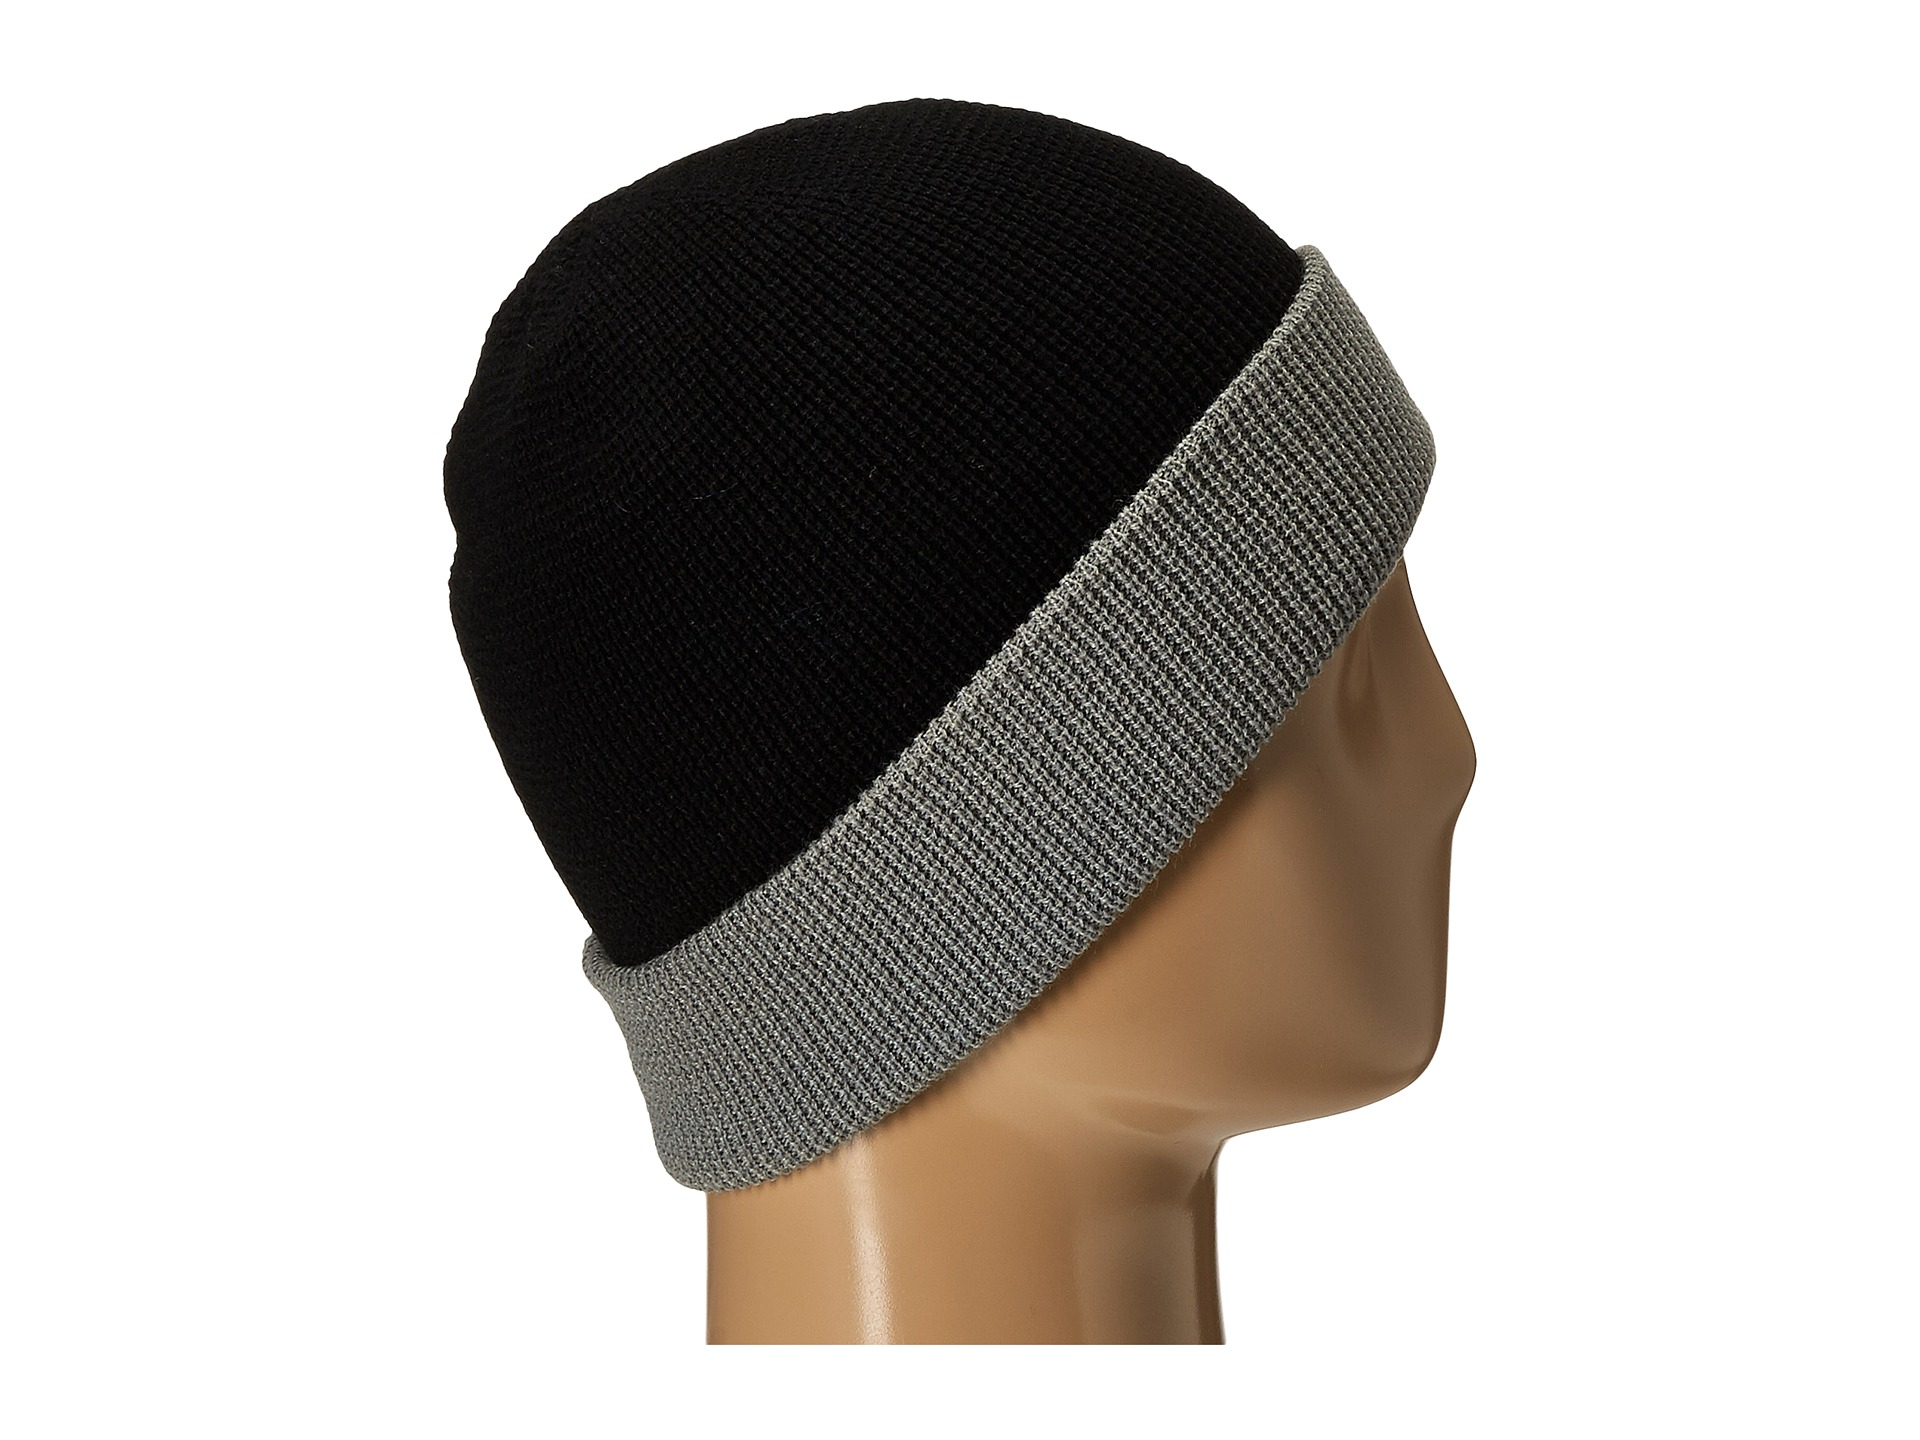 6f3e587f71e Lyst - 686 Waffe Roll-up Beanie in Black for Men